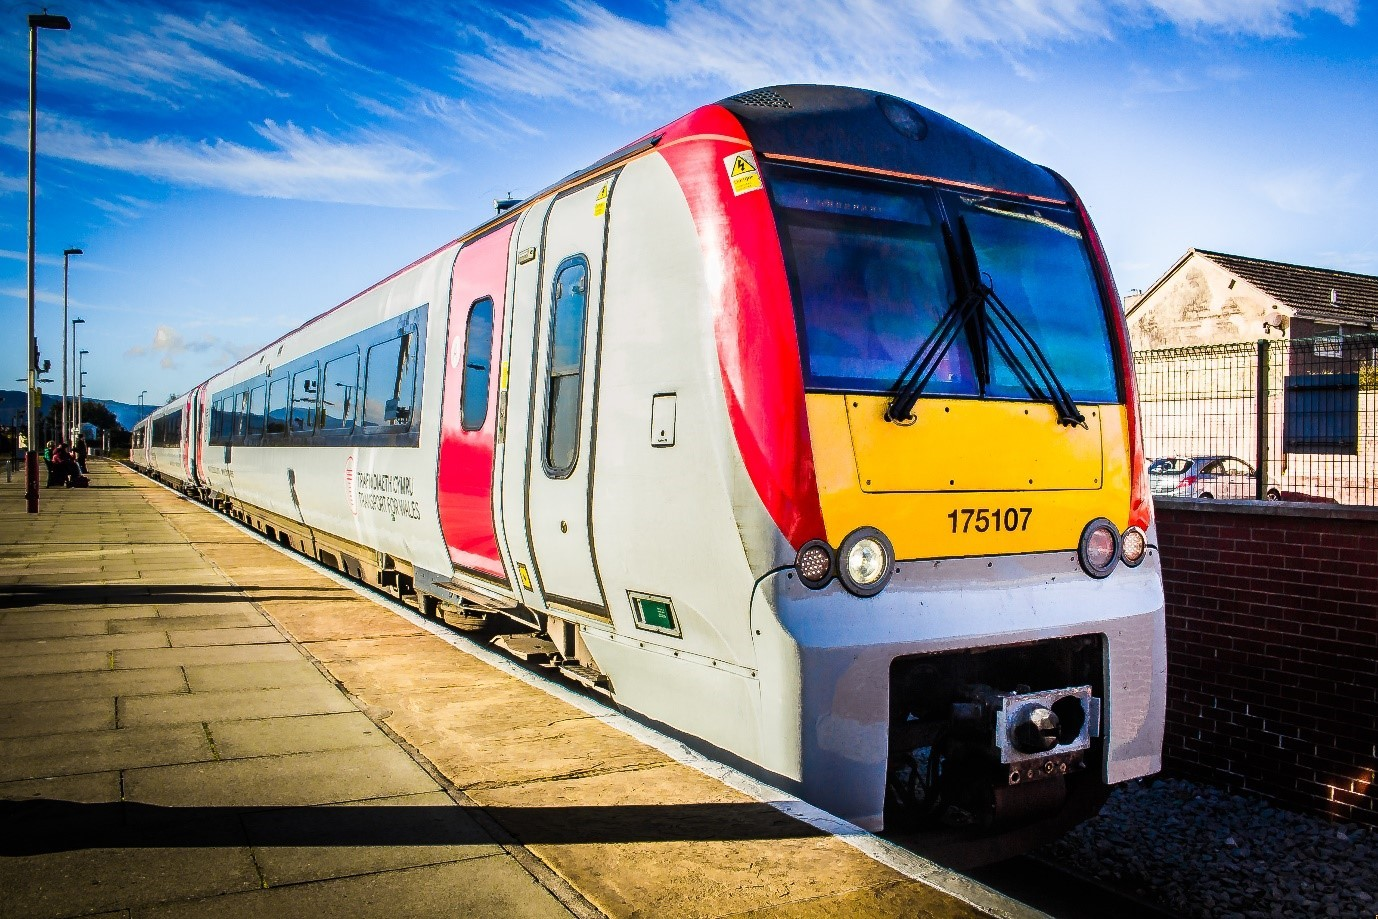 Rail journeys over 50 miles now cheapest ever as Transport for Wales launches pricing initiative